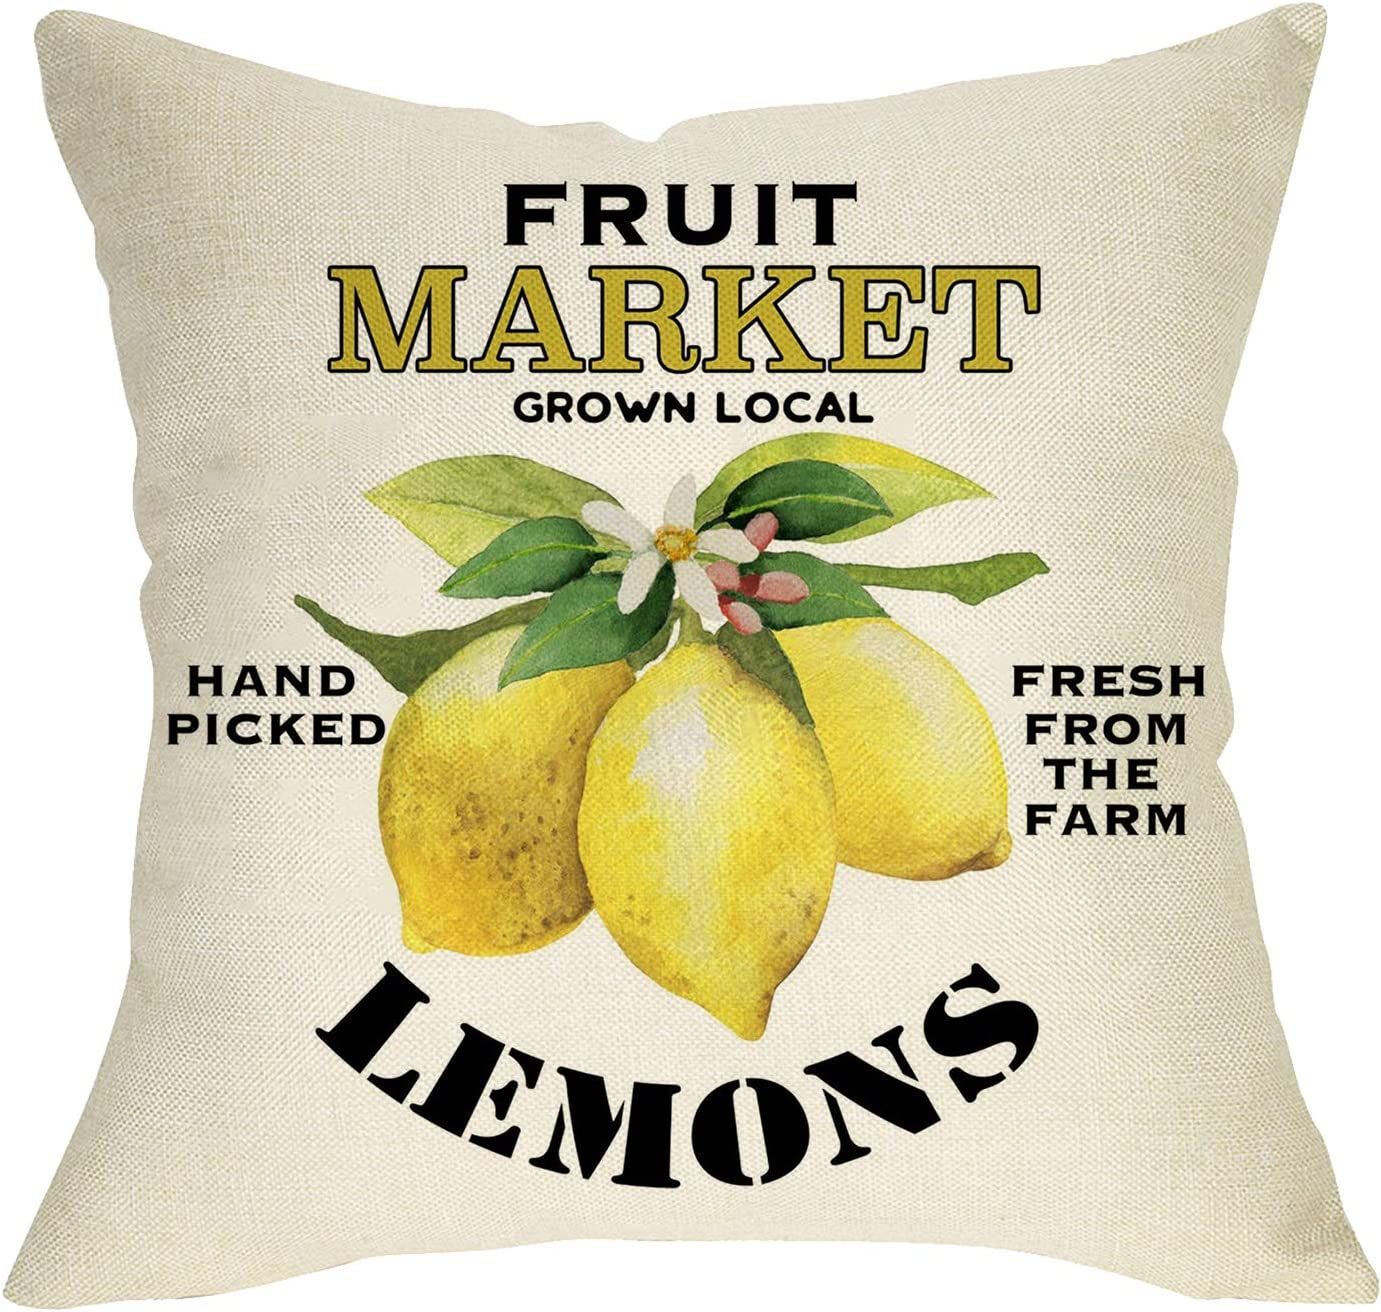 Fbcoo Fruit Market Lemons Decorative Throw Pillow Cover, Farmhouse Summer Cushion Case Decor Sign, Seasonal Home Square Outside Pillowcase Decorations for Sofa Couch 18 x 18 Inch Cotton Linen